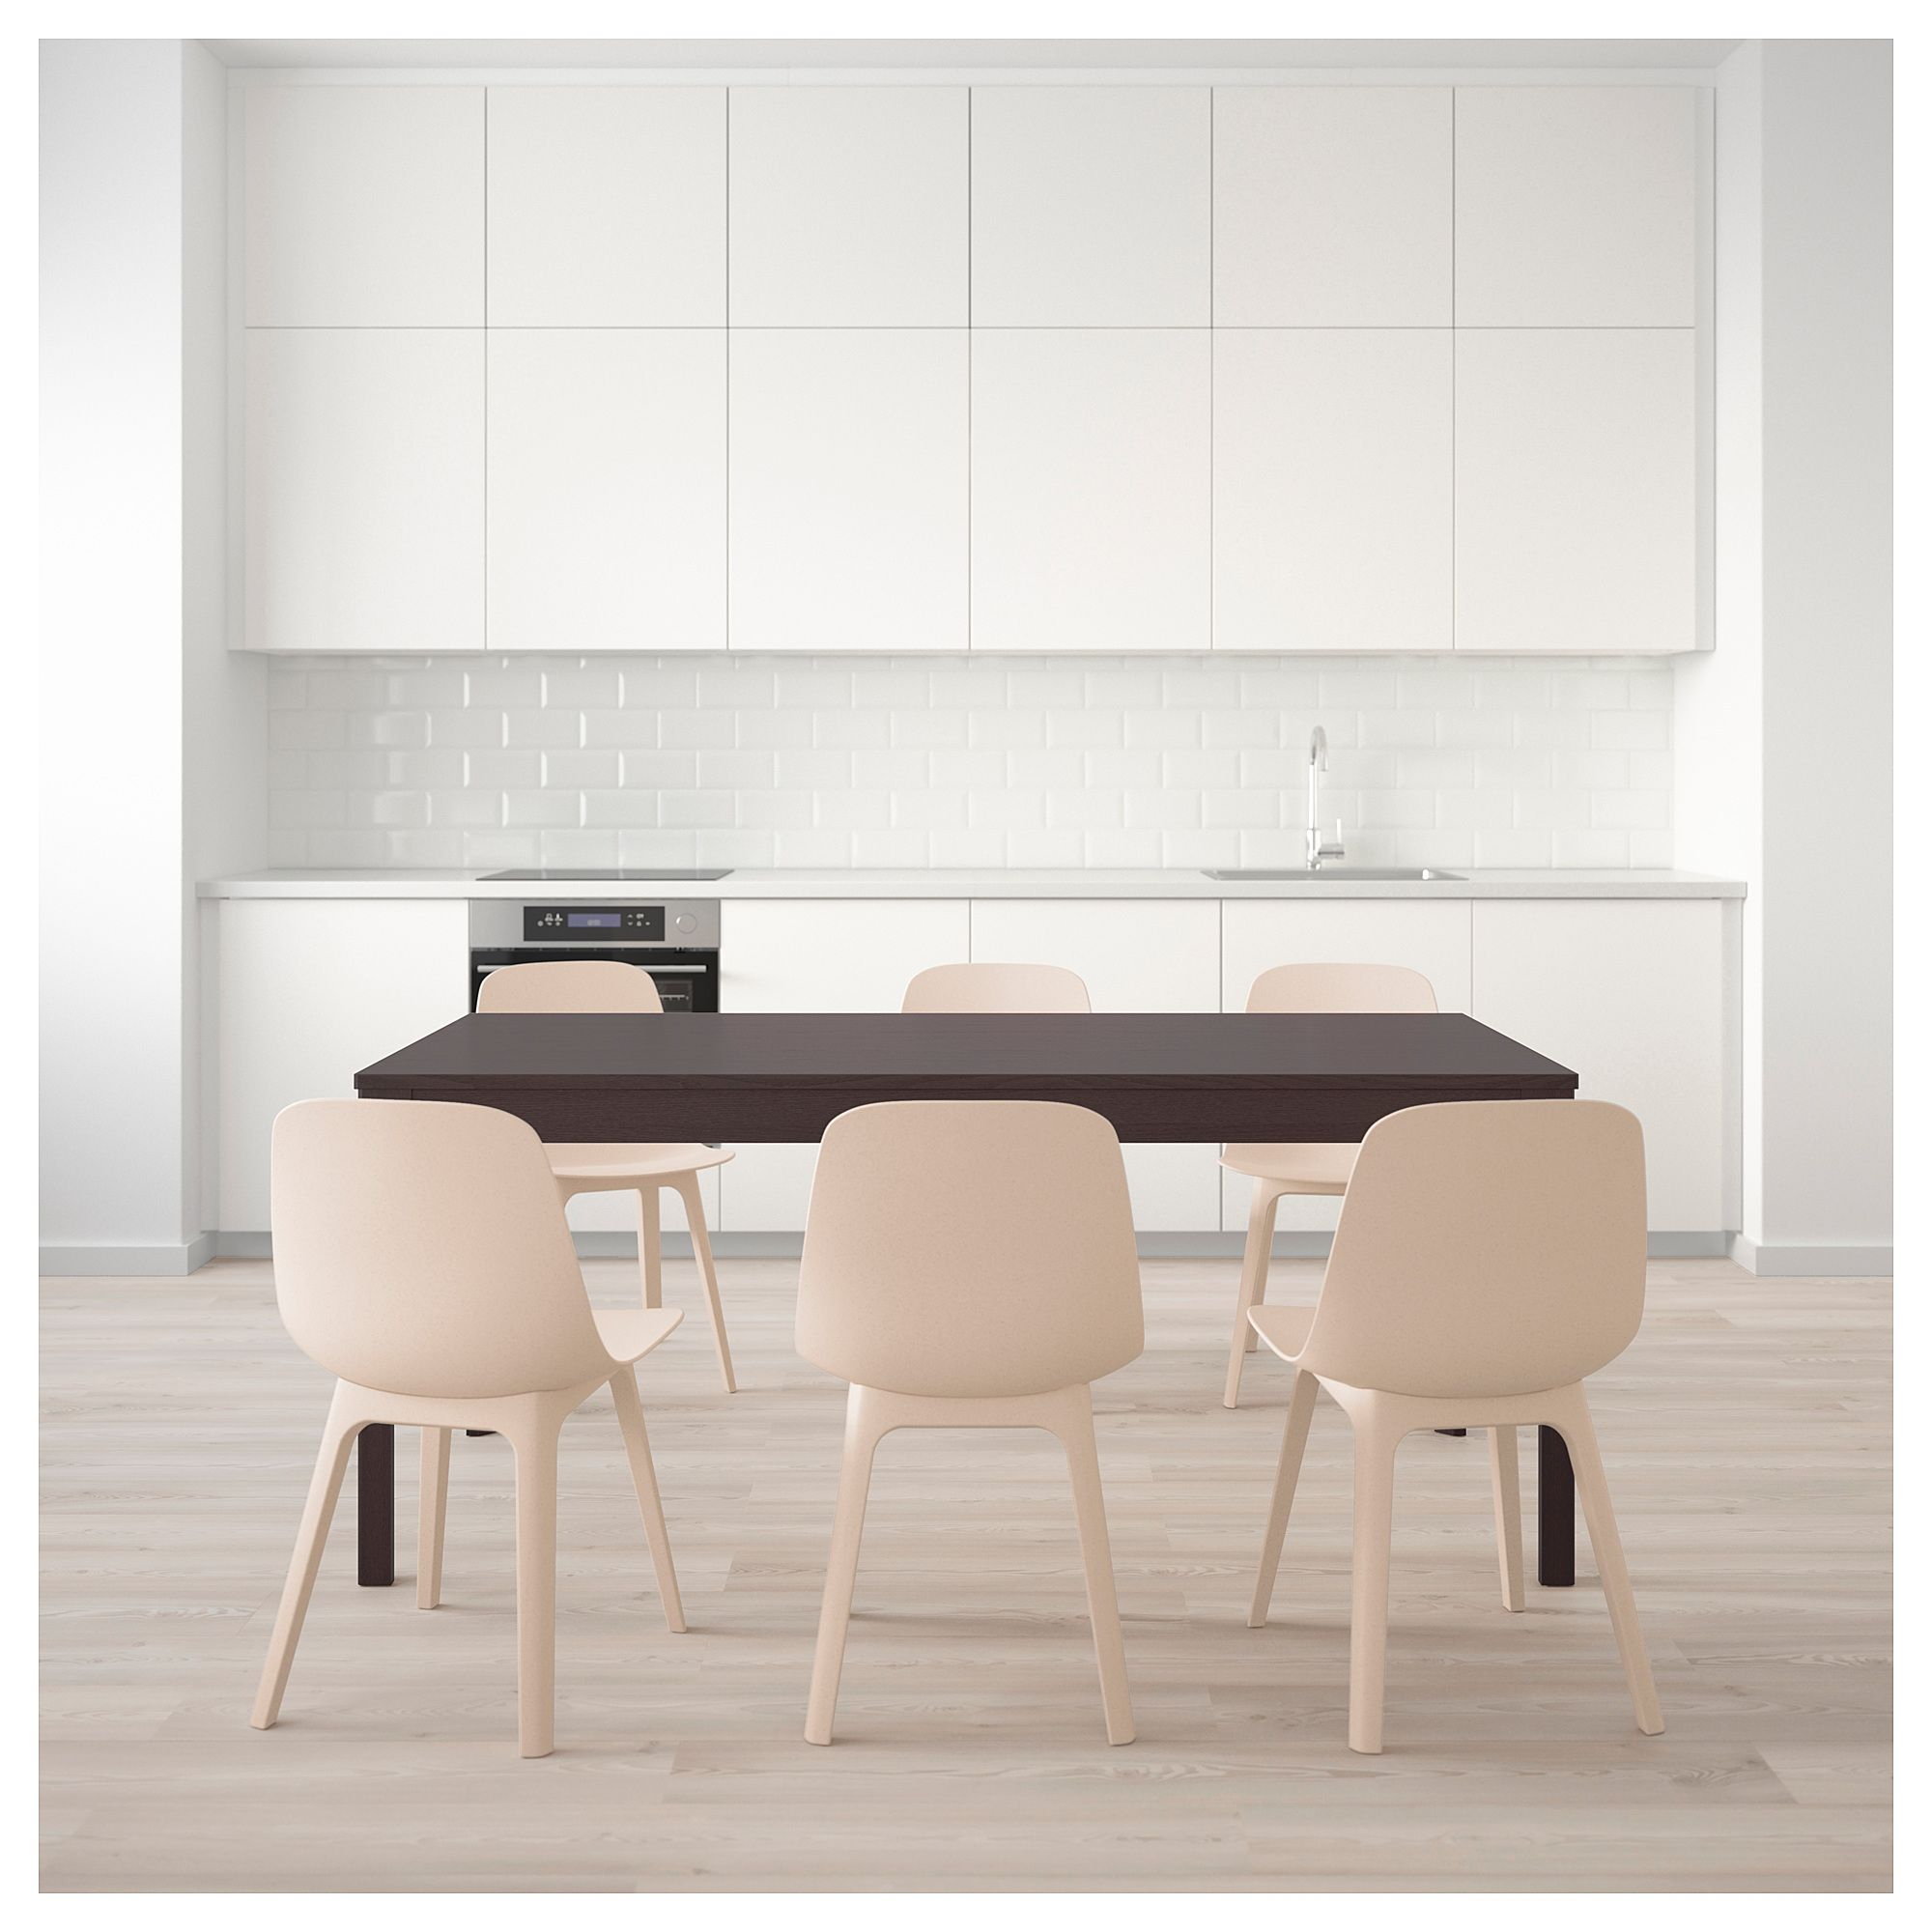 Ikea Ekedalen Odger Table And 6 Chairs Dark Brown White